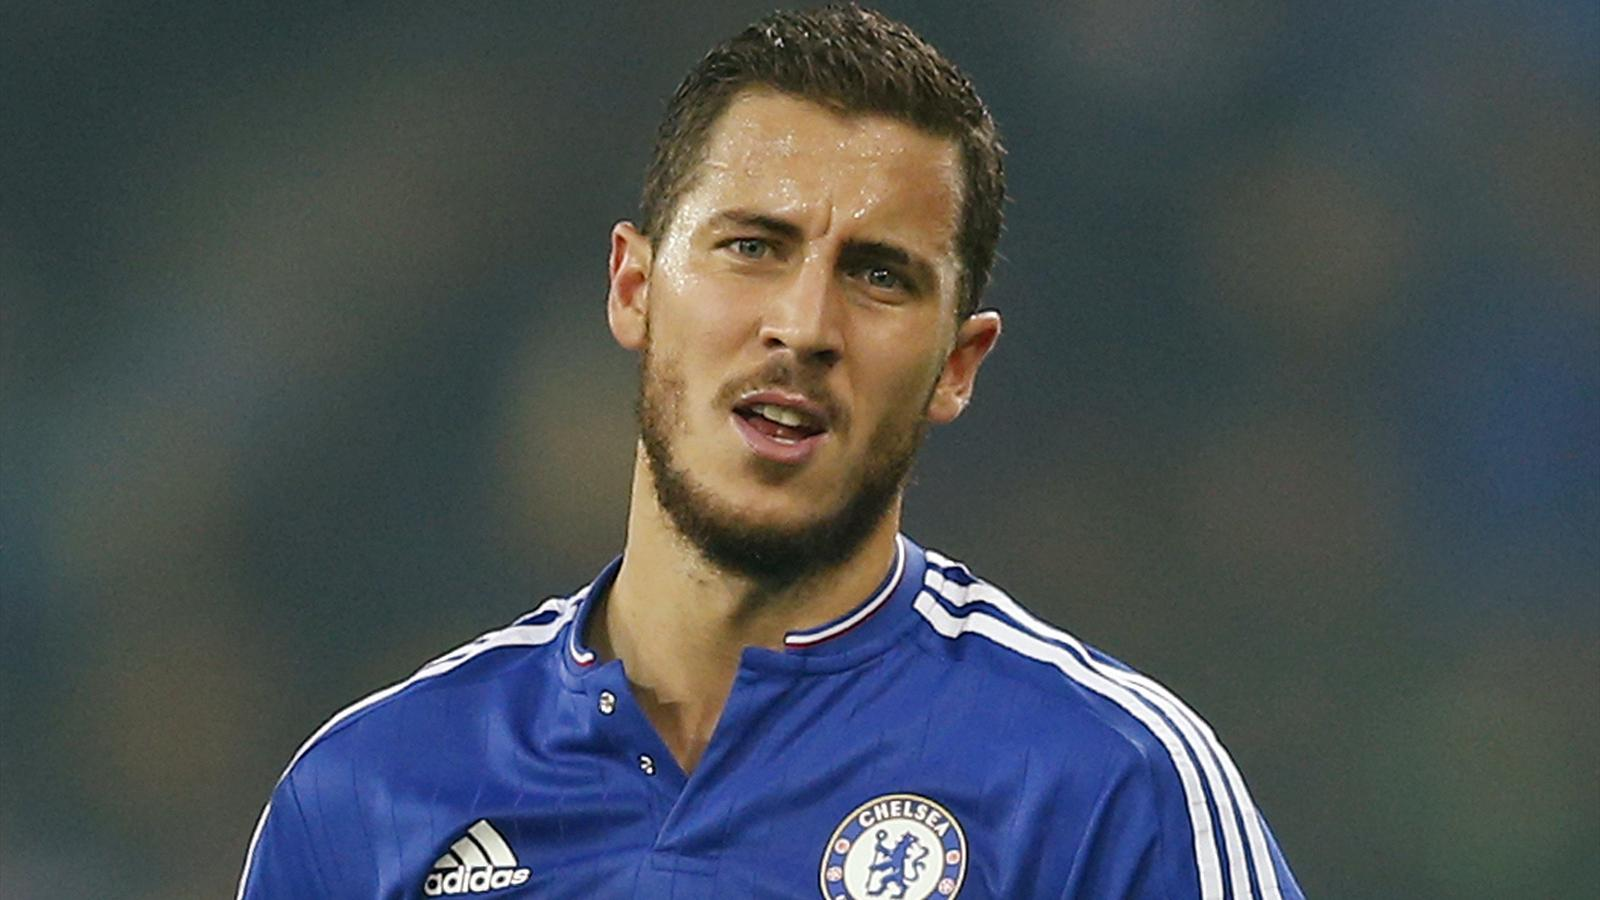 Chelsea star Eden Hazard looks frustrated